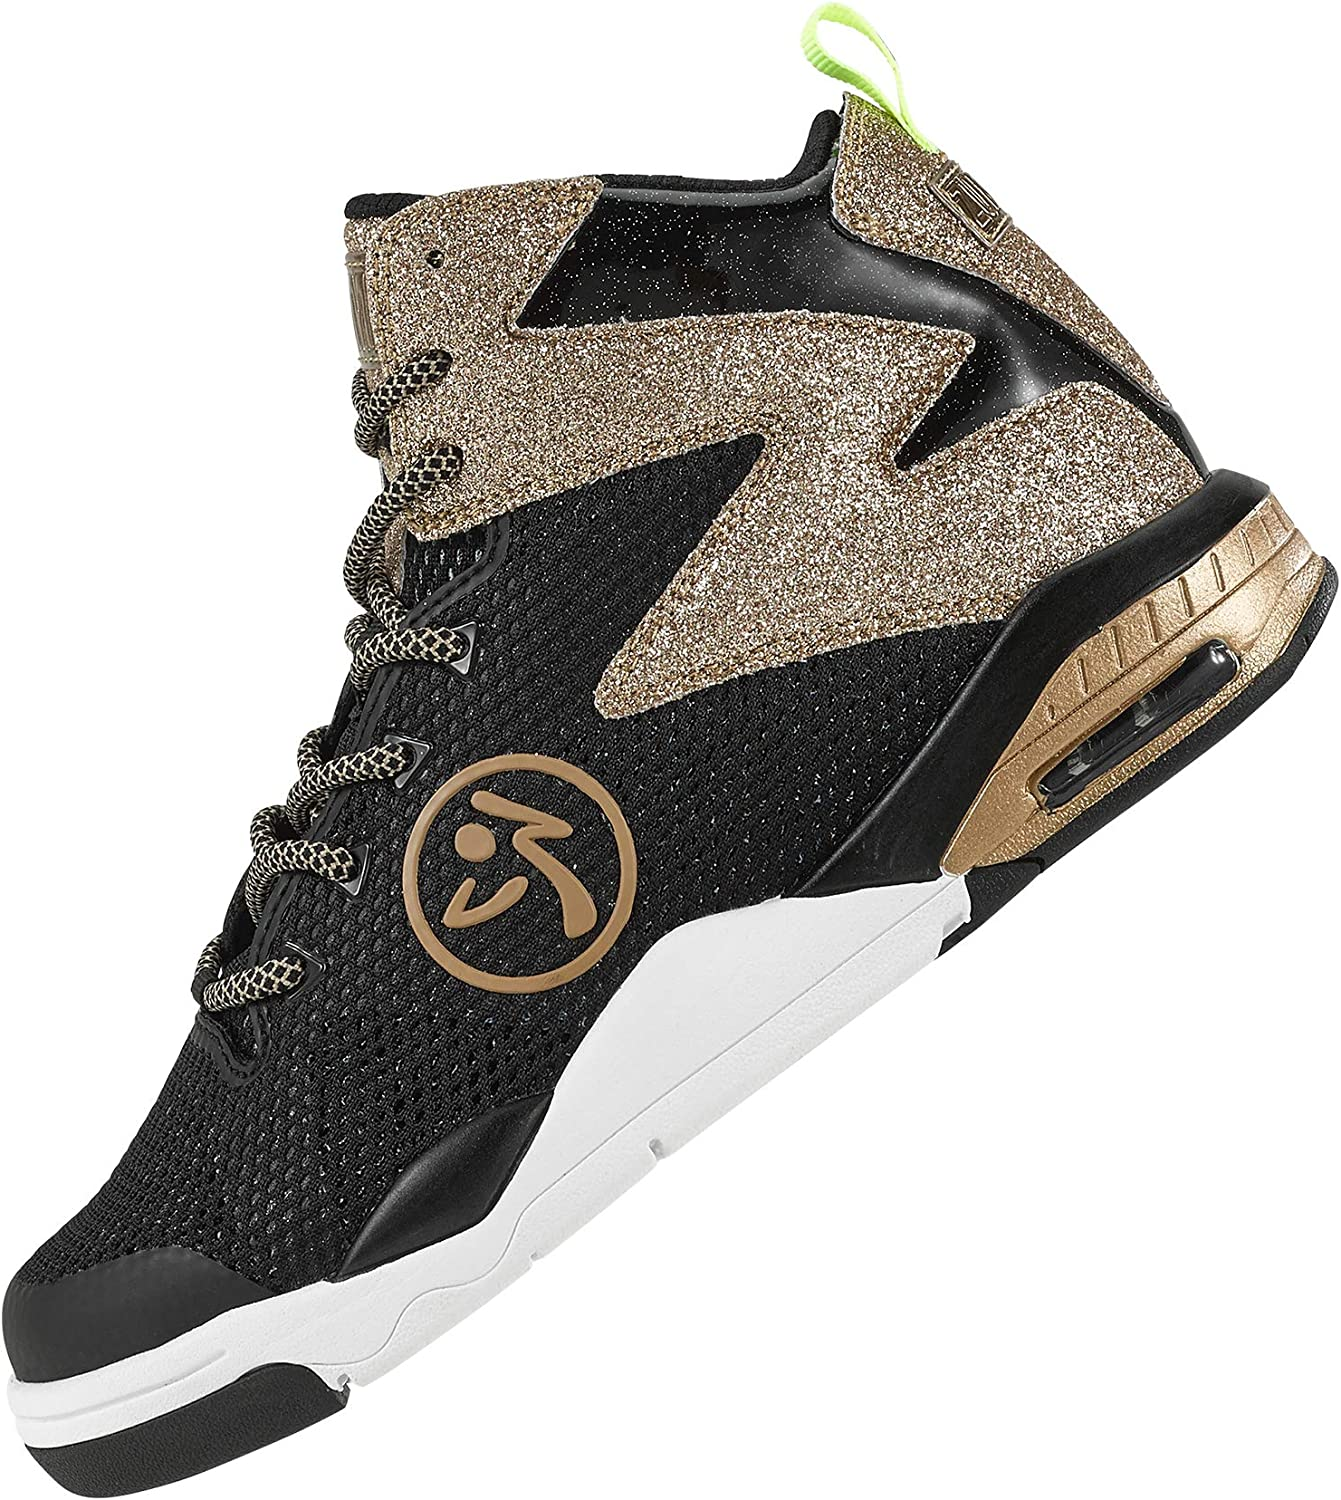 Zumba Air Classic Remix Sportliche High Top Tanzschuhe Damen Fitness Workout Sneakers Golden